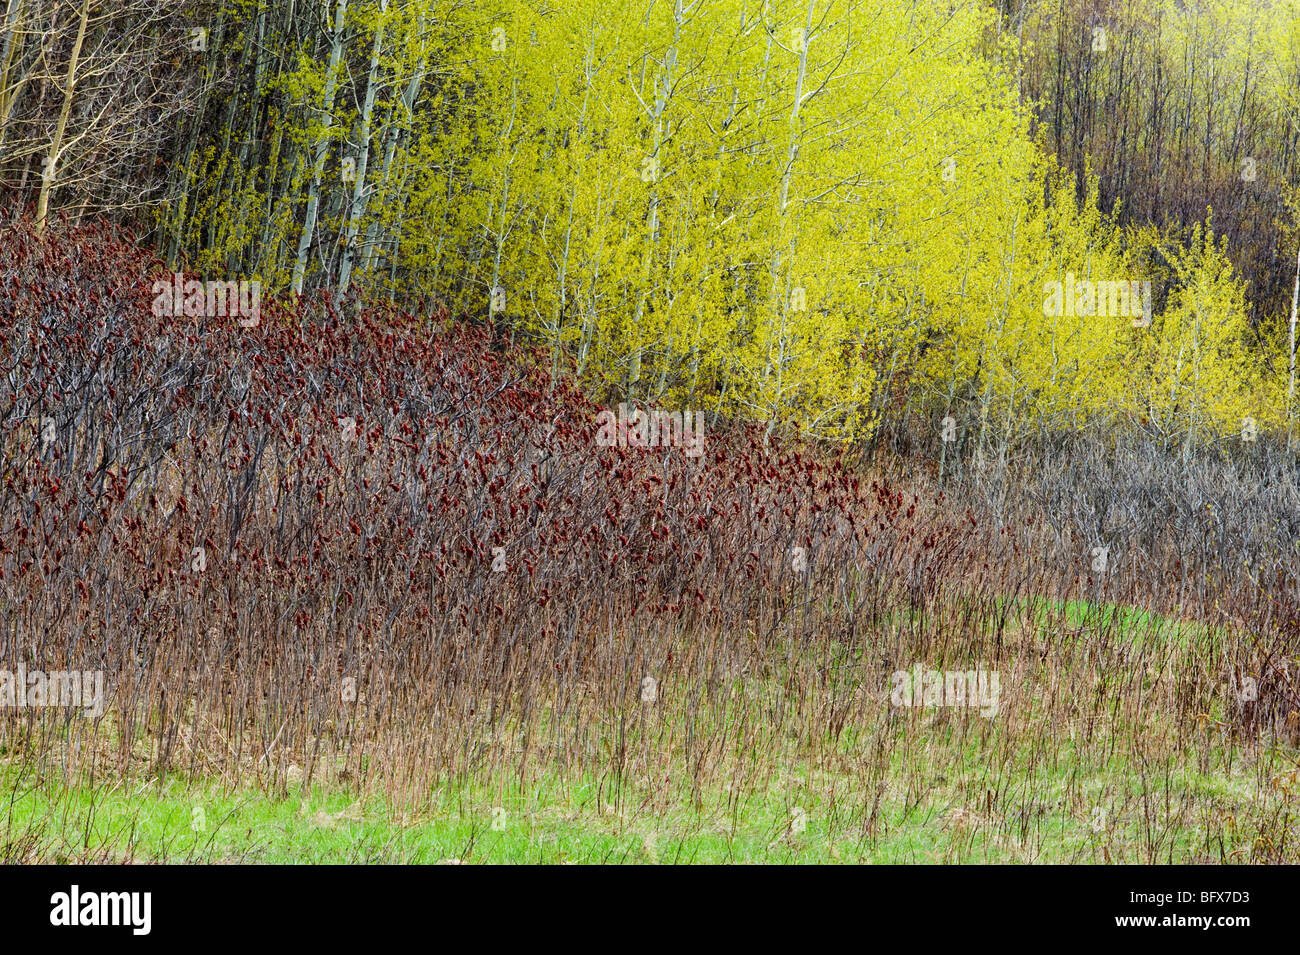 Emerging foliage in aspen grove with sumac shrubs, Greater Sudbury, Ontario, Canada - Stock Image